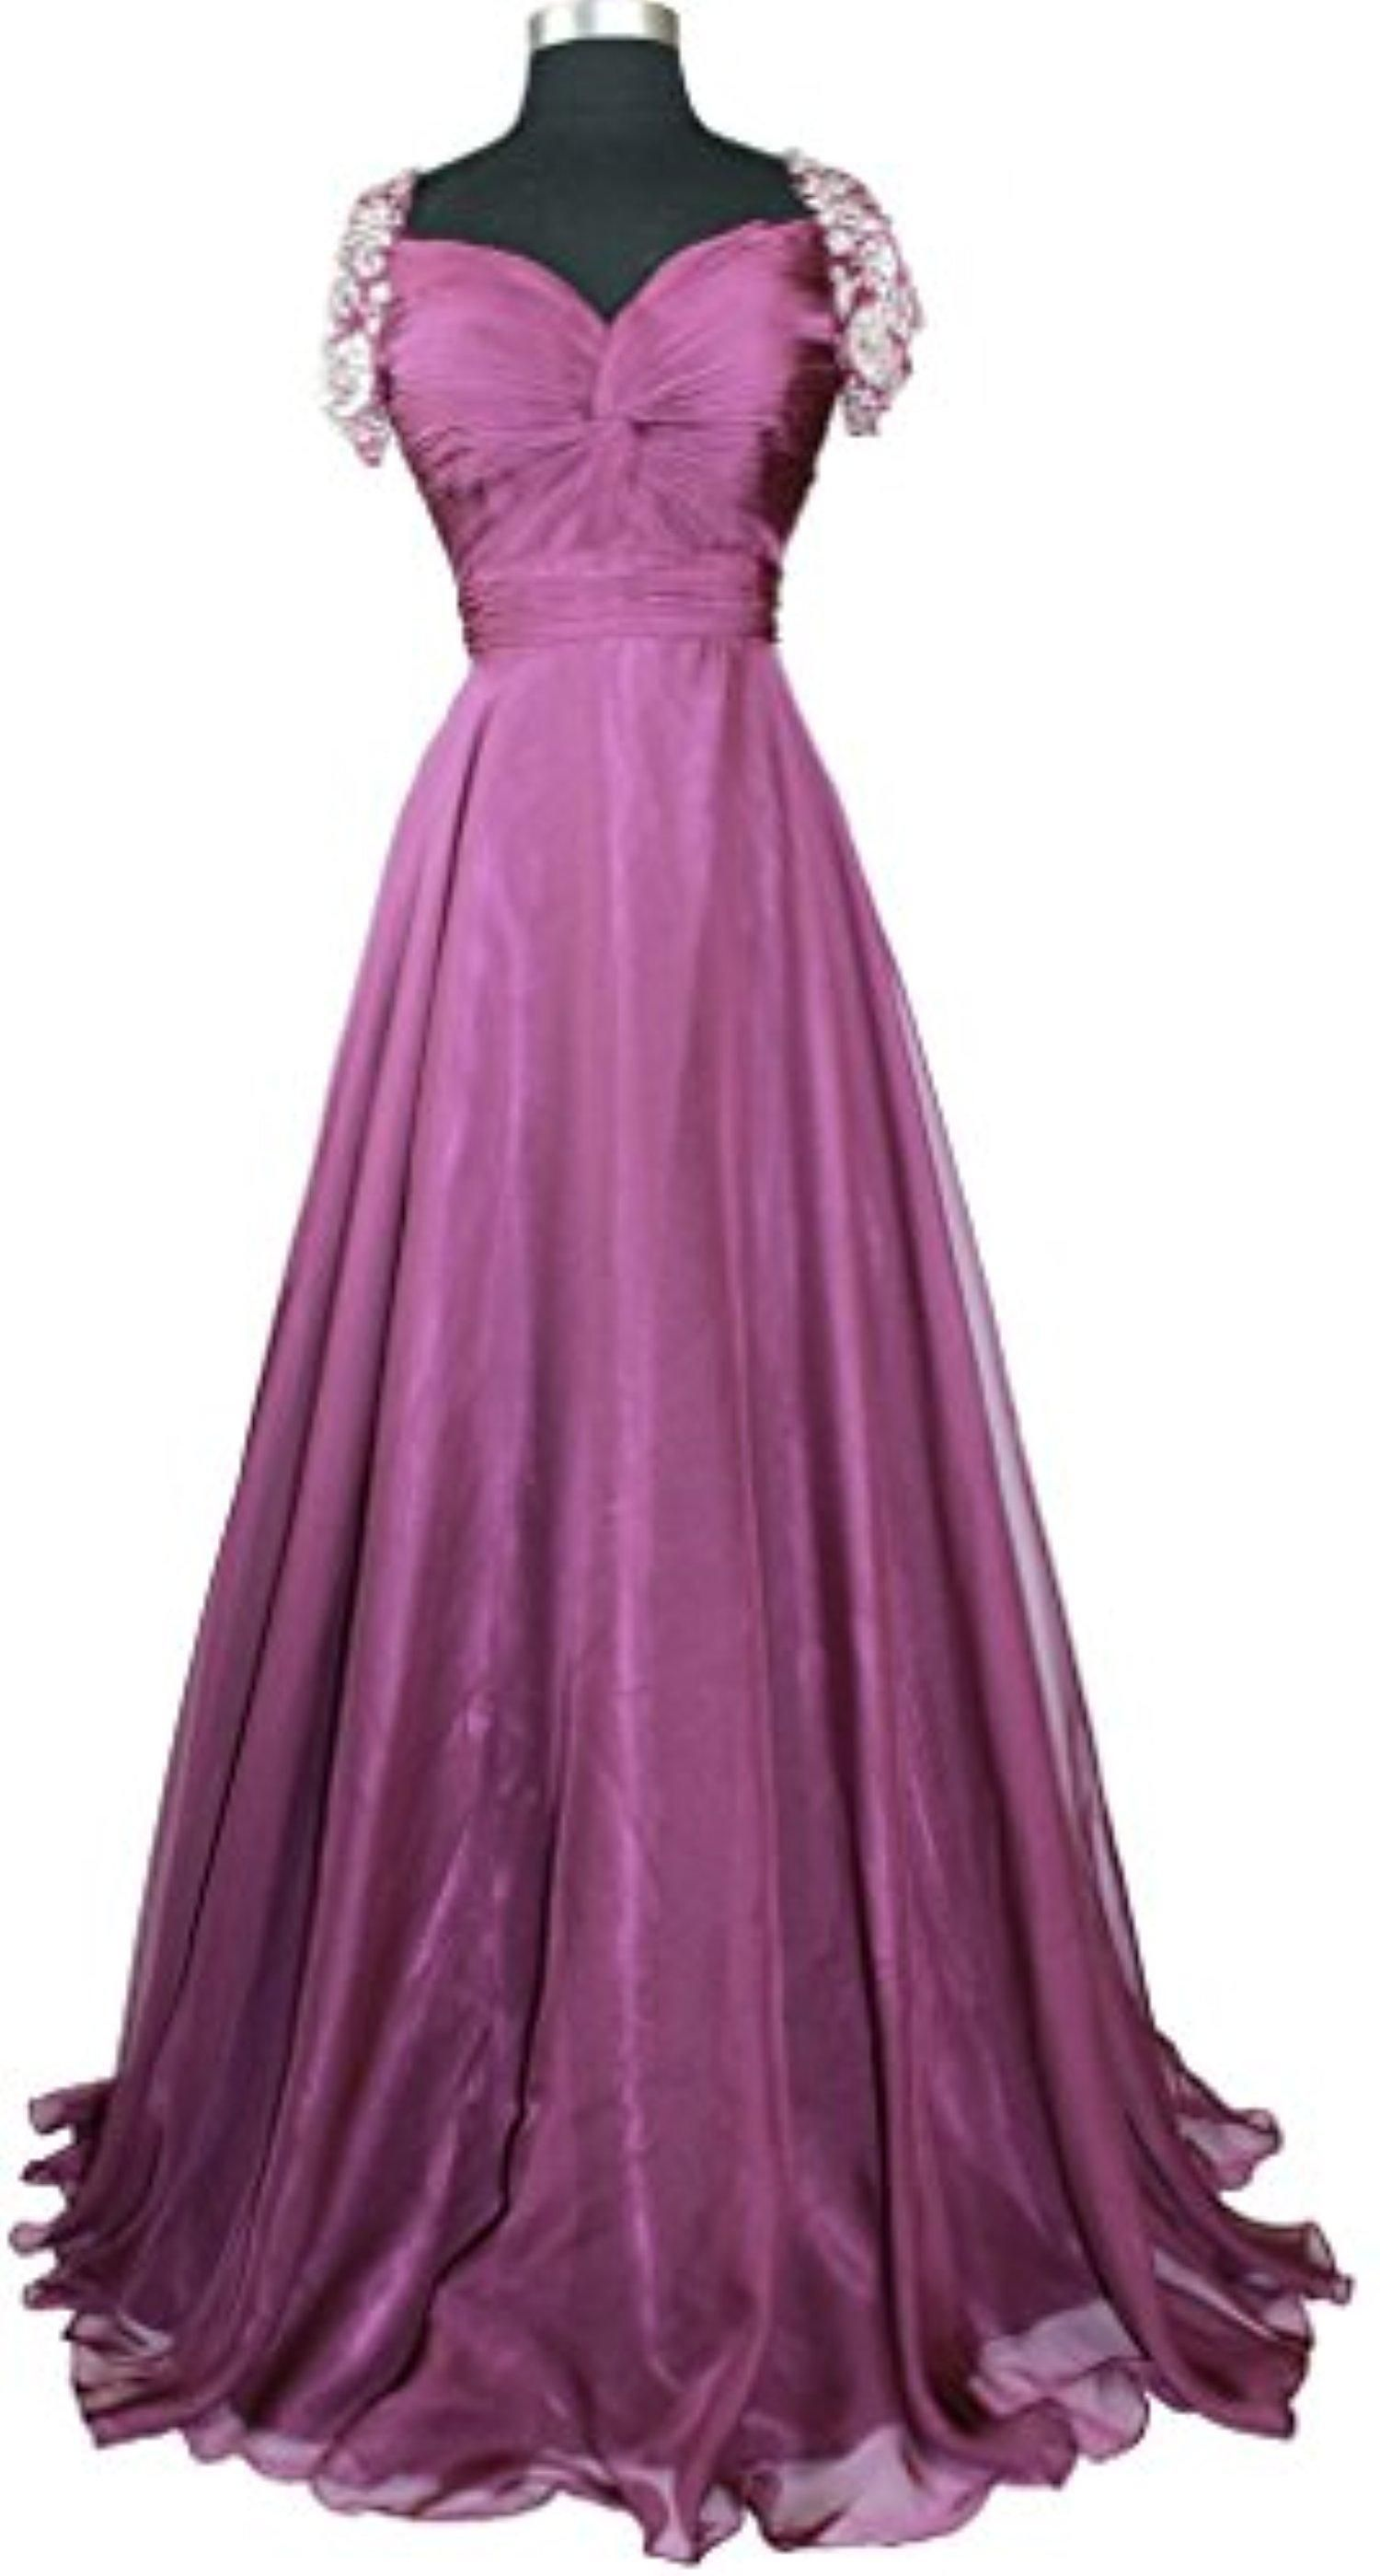 Meier Women's Beaded Short Sleeve Pleated Mother of Bride Evening Prom Dress M10 Eggplant 20 - Brought to you by Avarsha.com